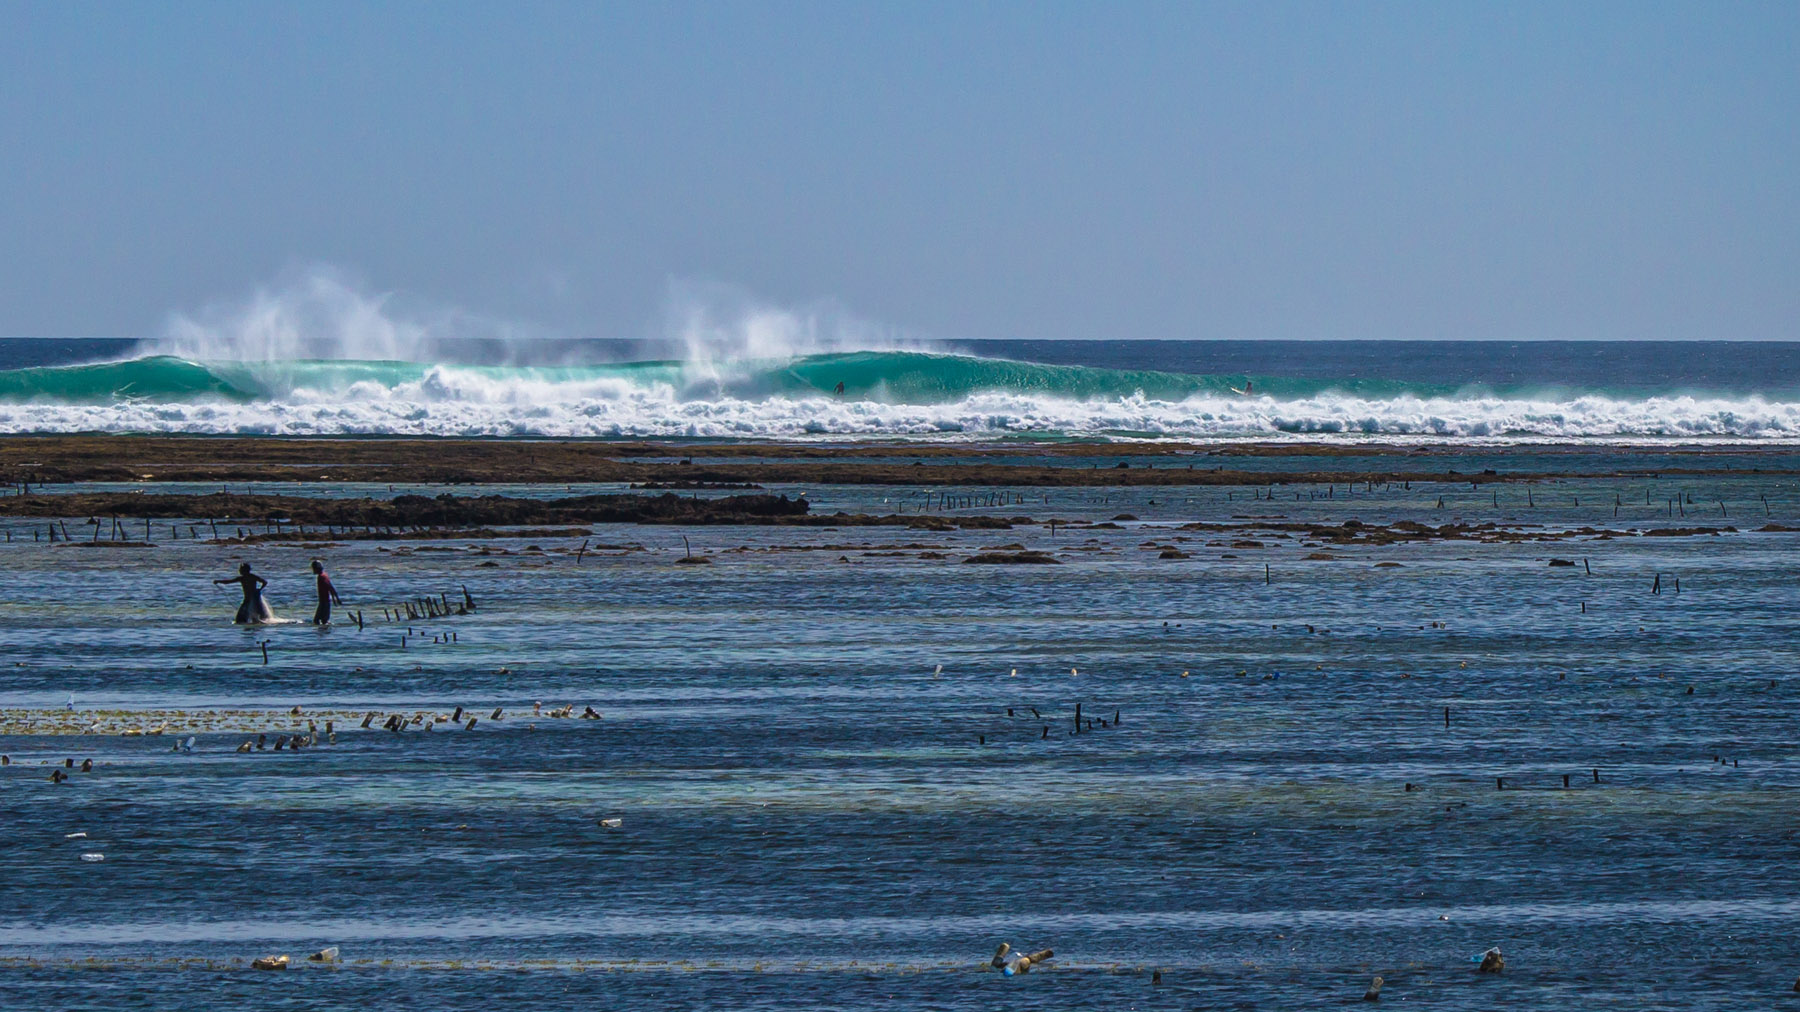 perfect empty waves at this remote surf spot